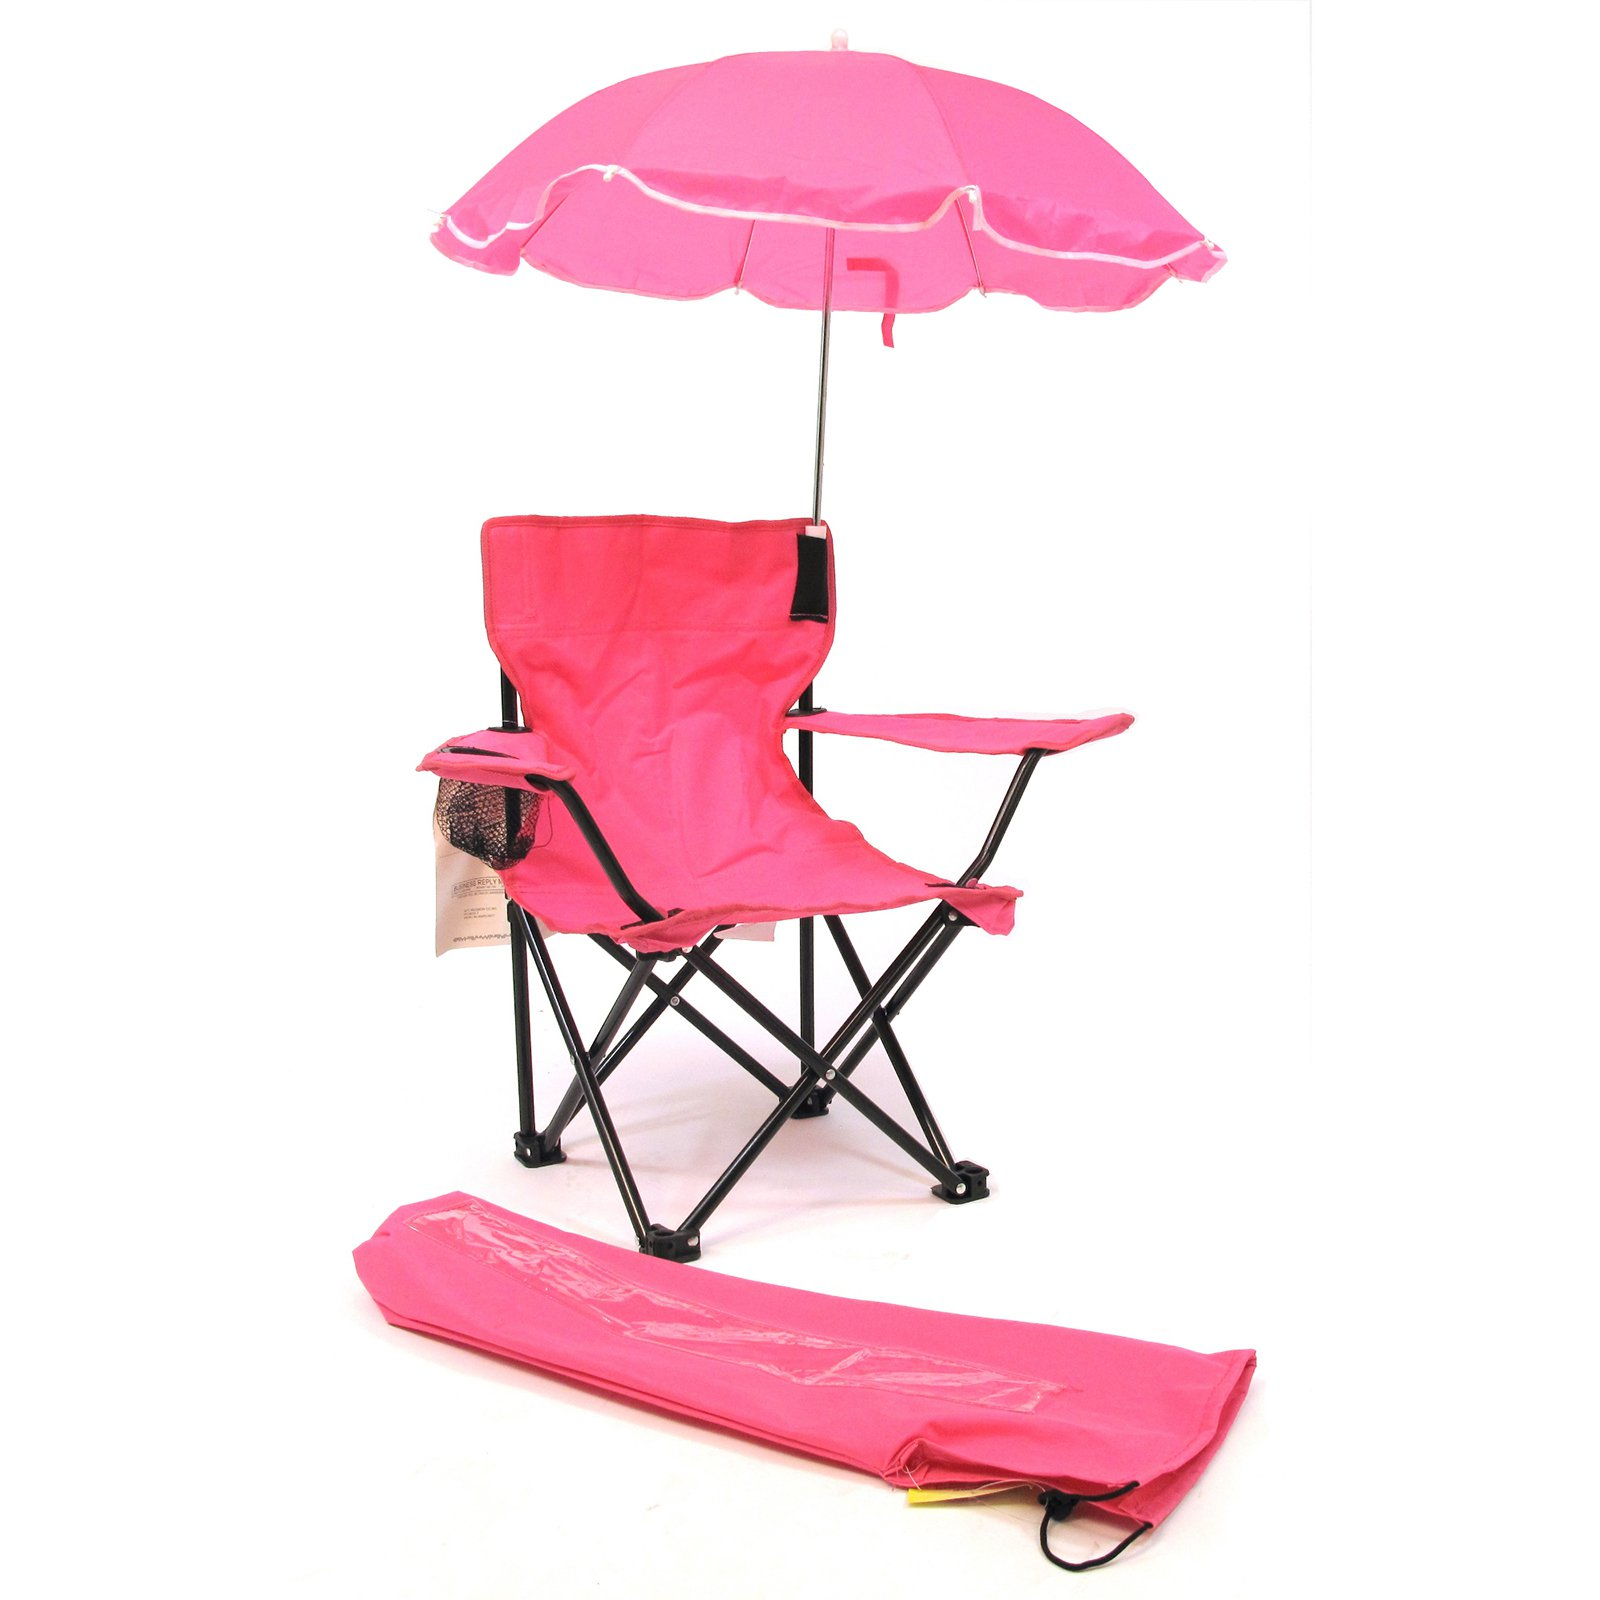 Charmant Beach Baby Kids Camp Chair With Umbrella   Walmart.com